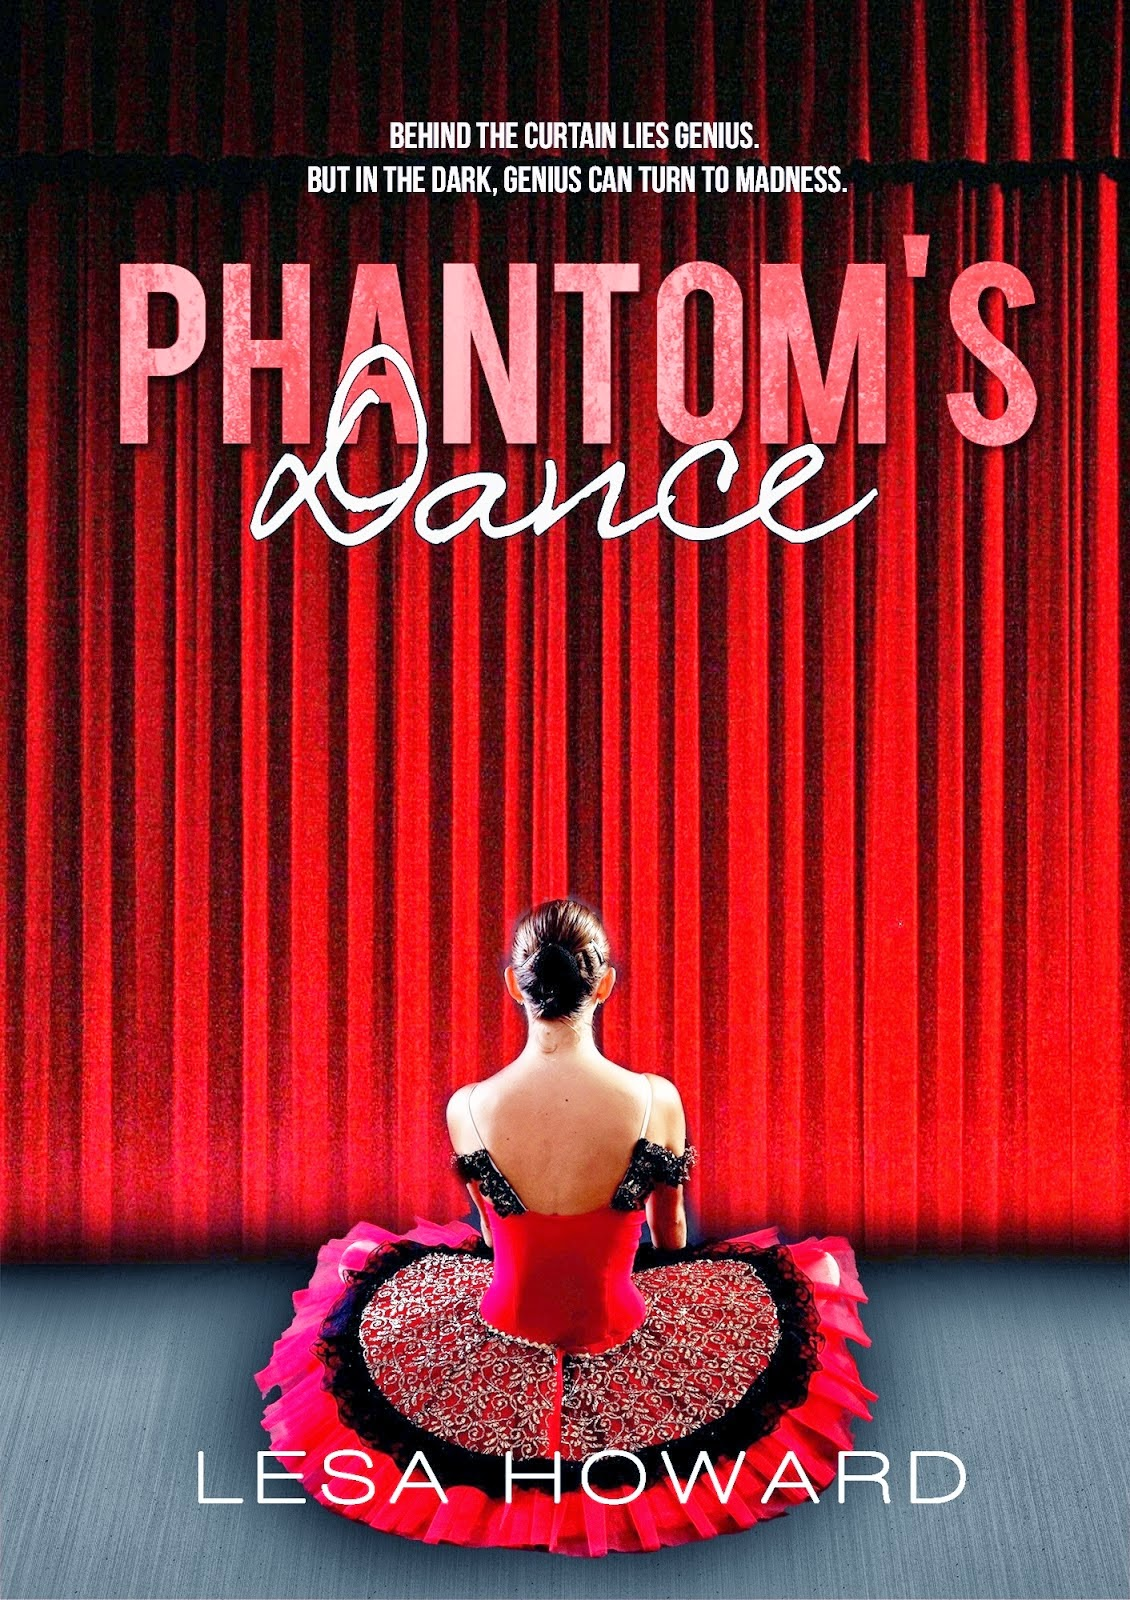 https://www.goodreads.com/book/show/21912787-phantom-s-dance?from_search=true